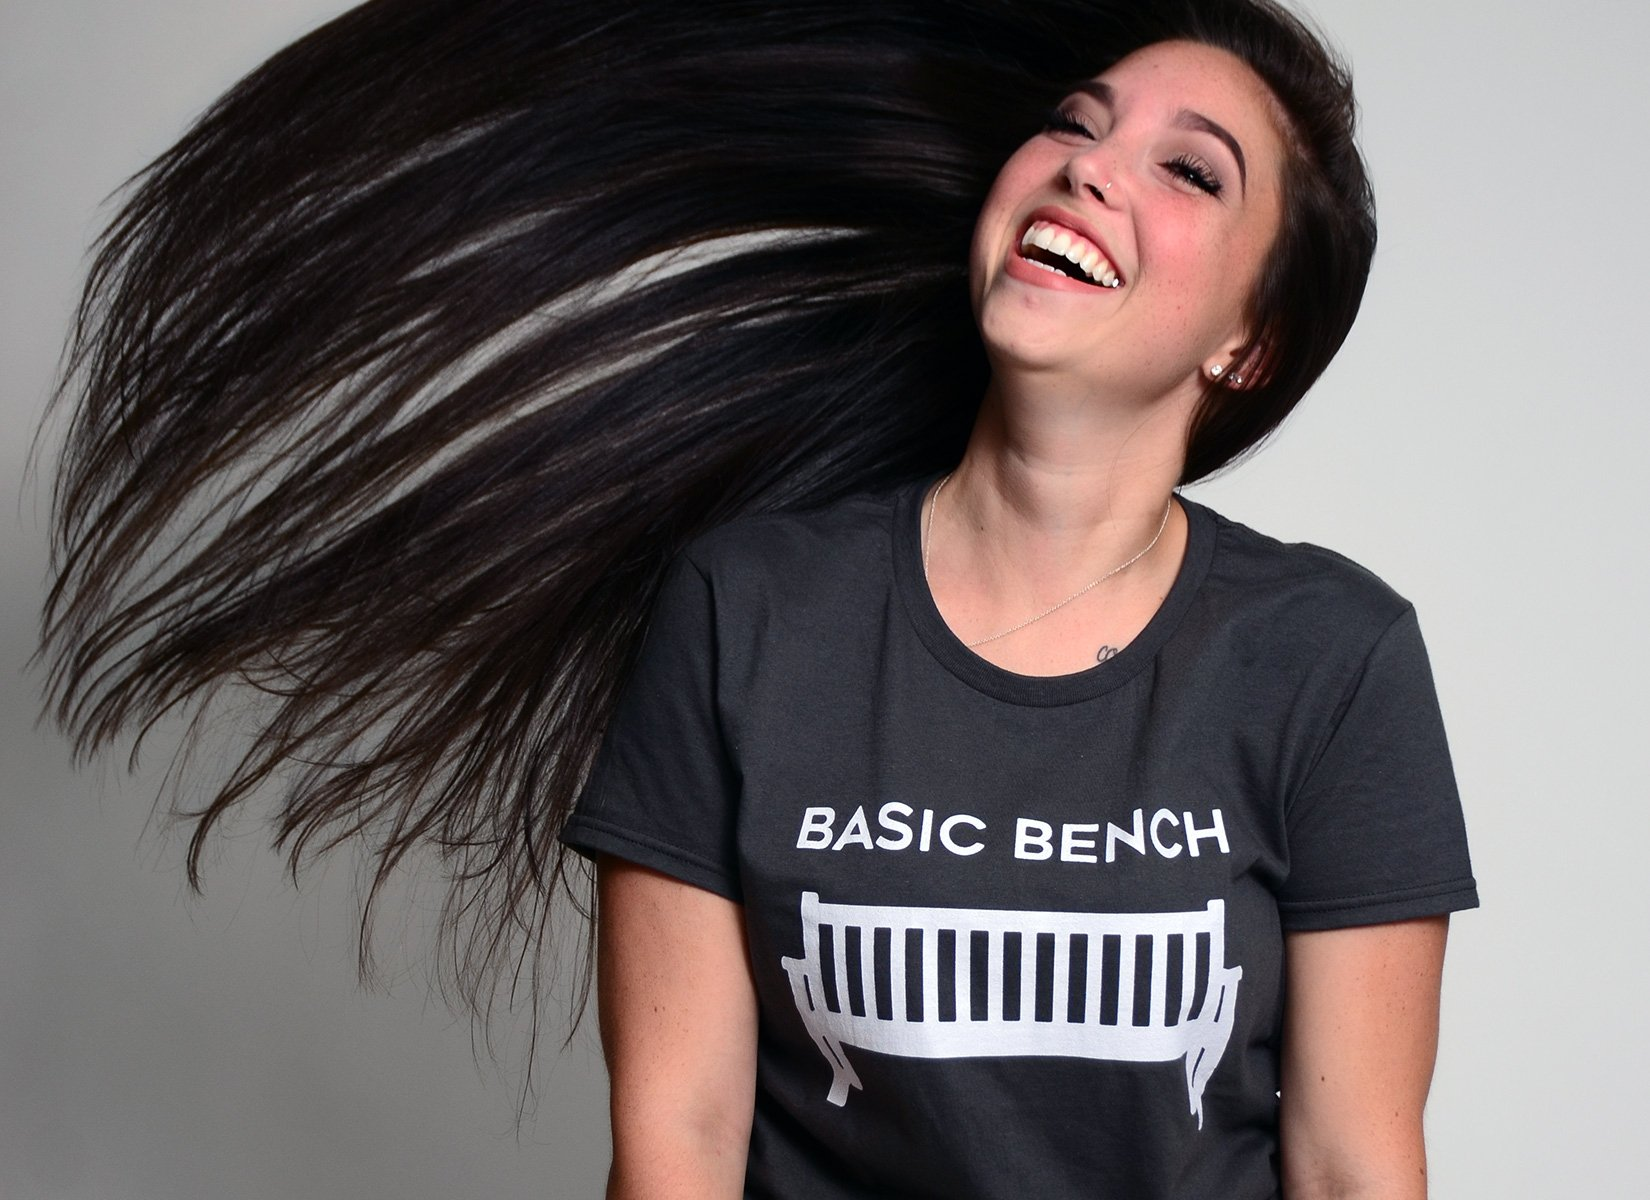 Basic Bench on Womens T-Shirt